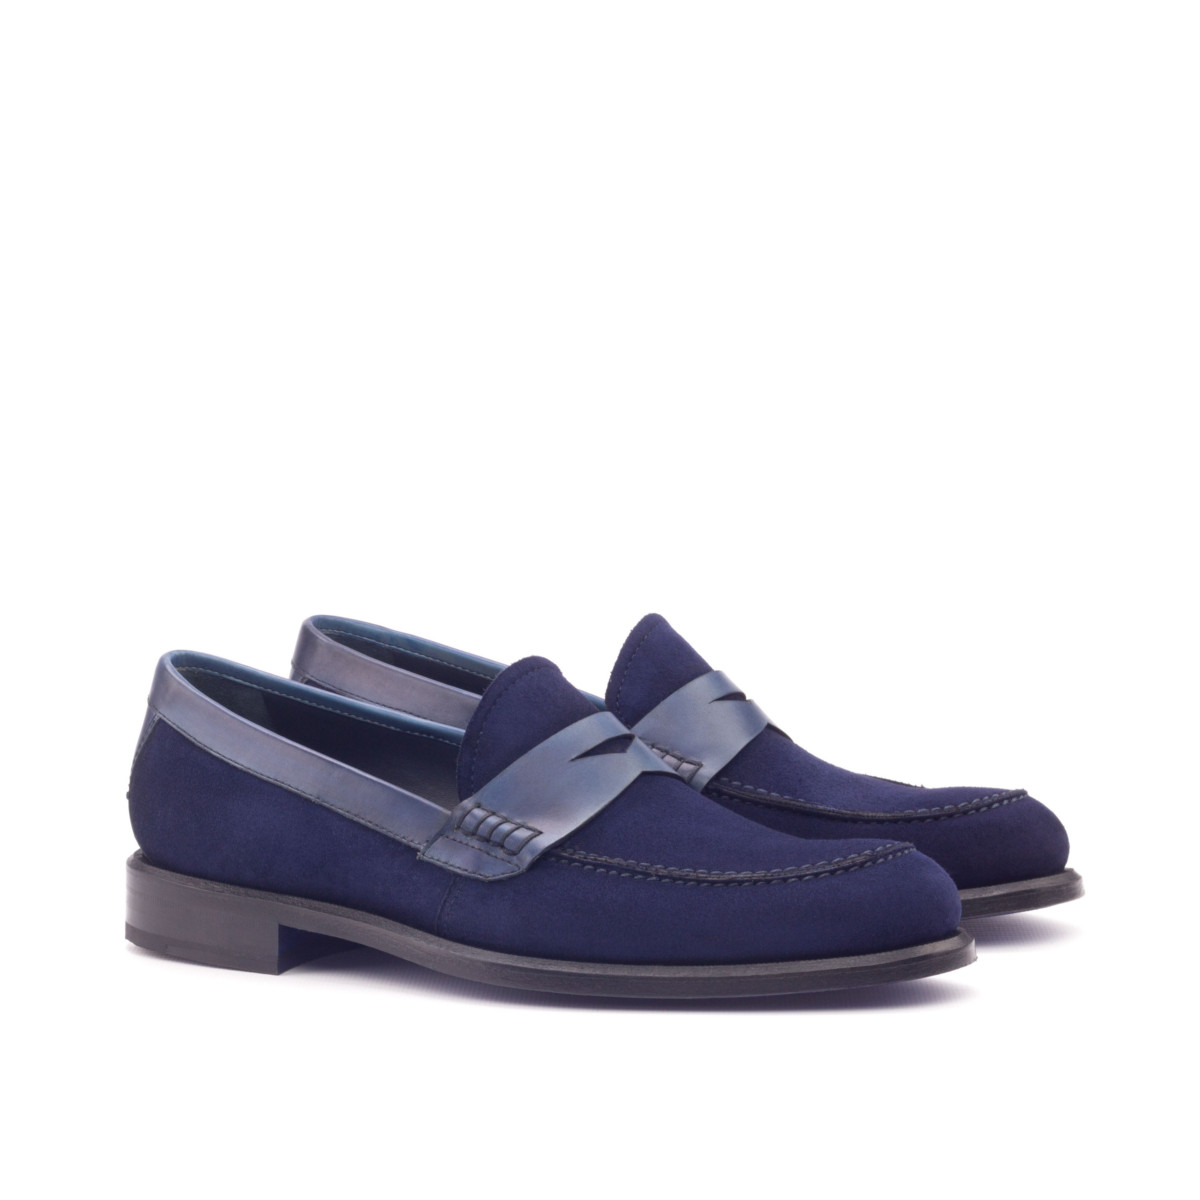 Blue suede women's loafers